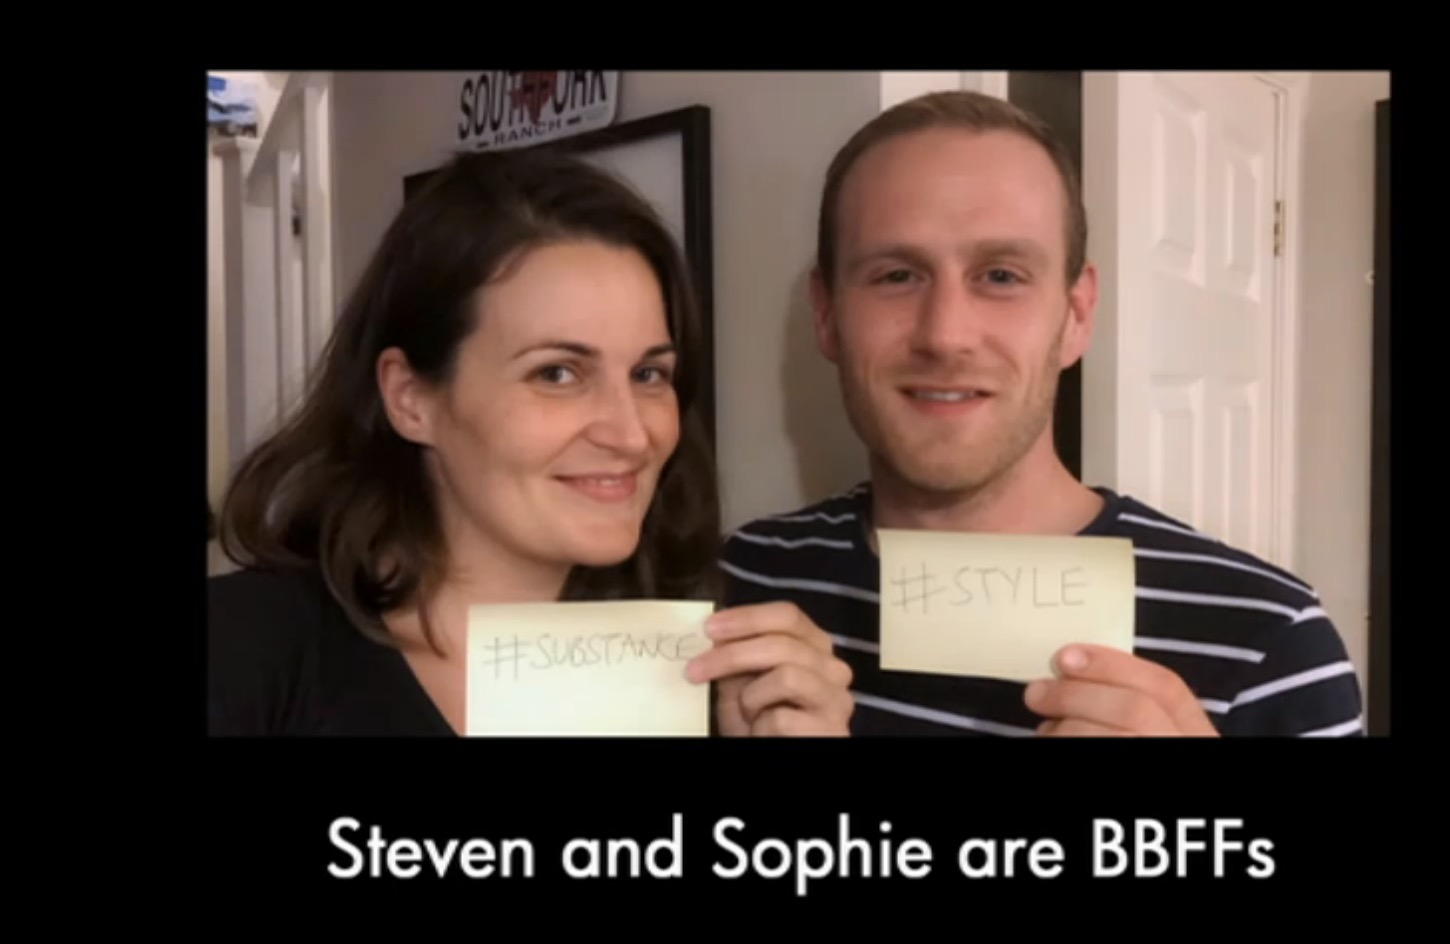 Bake Off Sophie and Steven